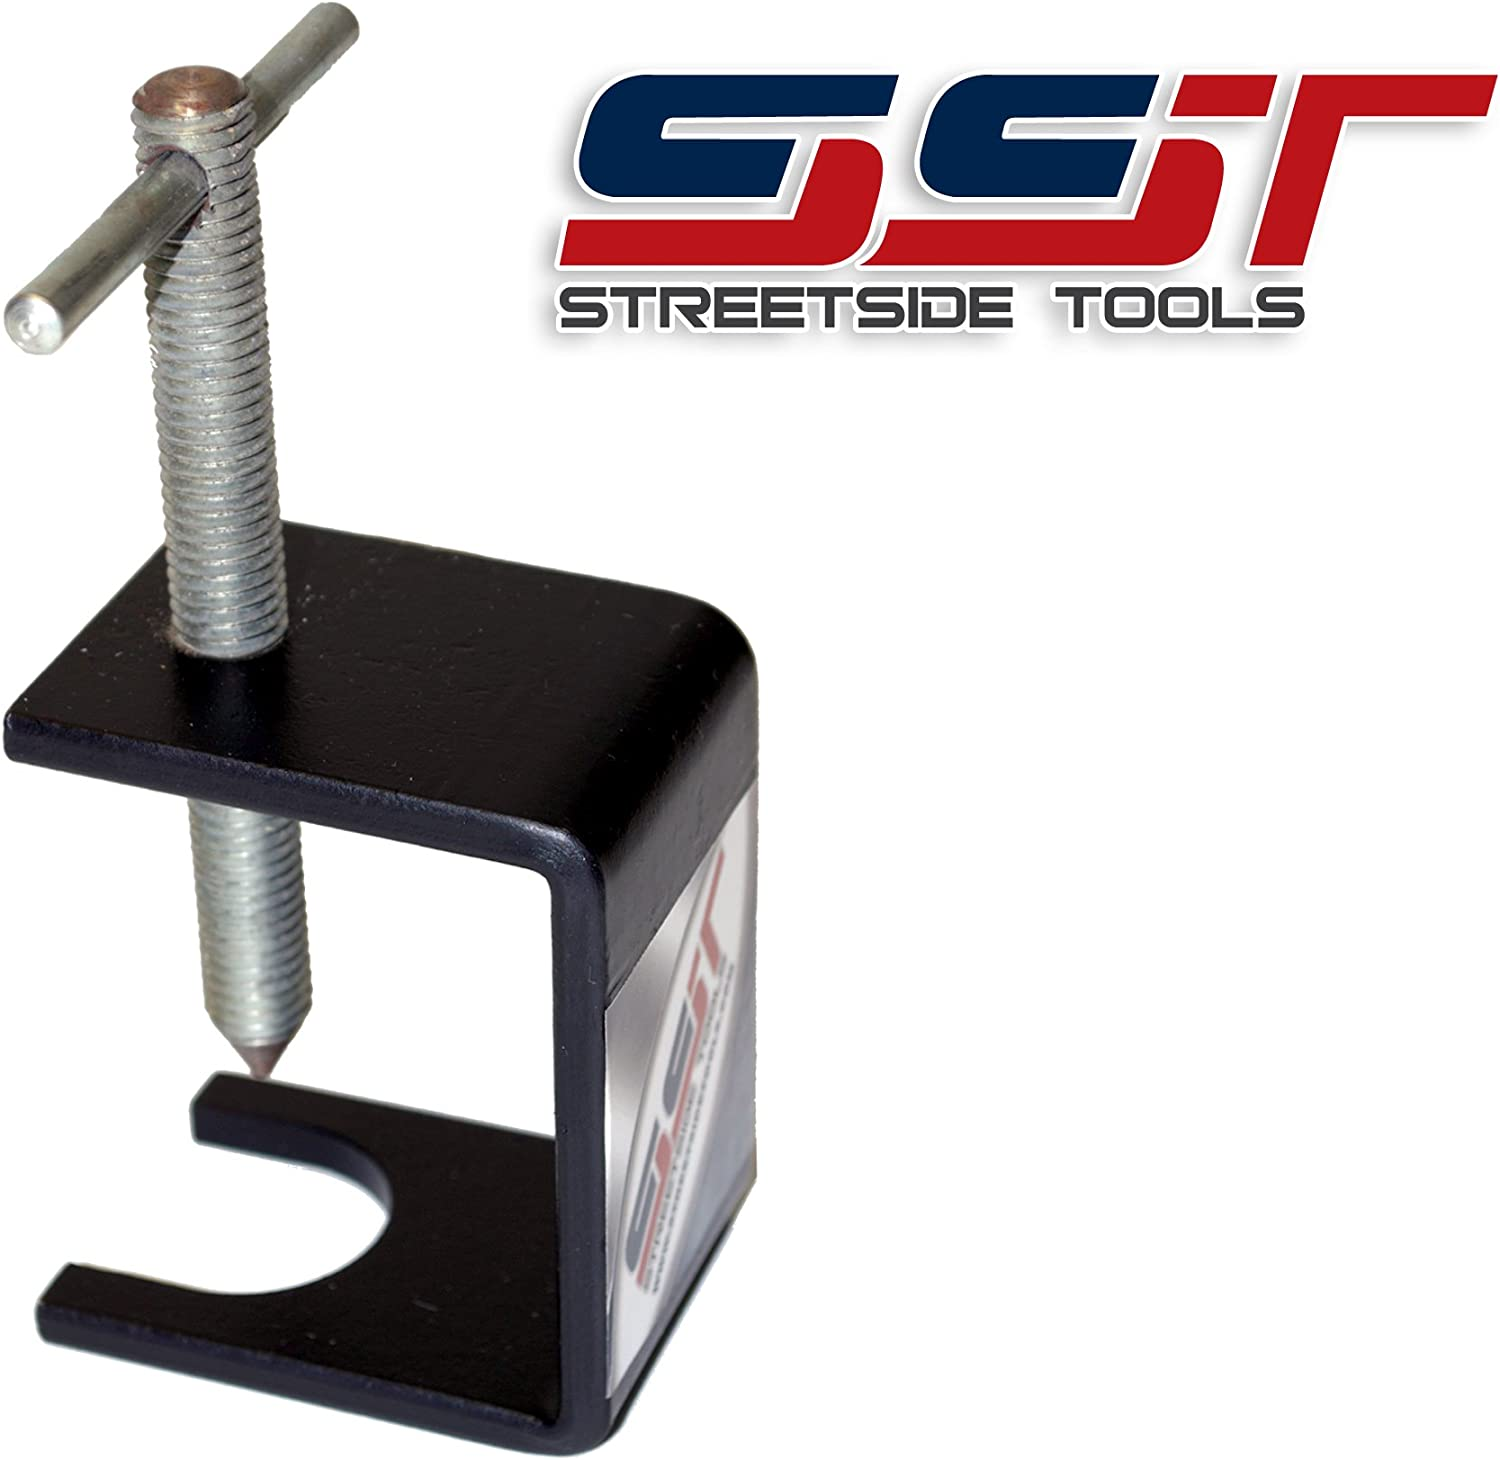 Streetside Tucson Mall Tools SST-1071-A - Ranking TOP3 GM Pis Accumulator Direct Clutch